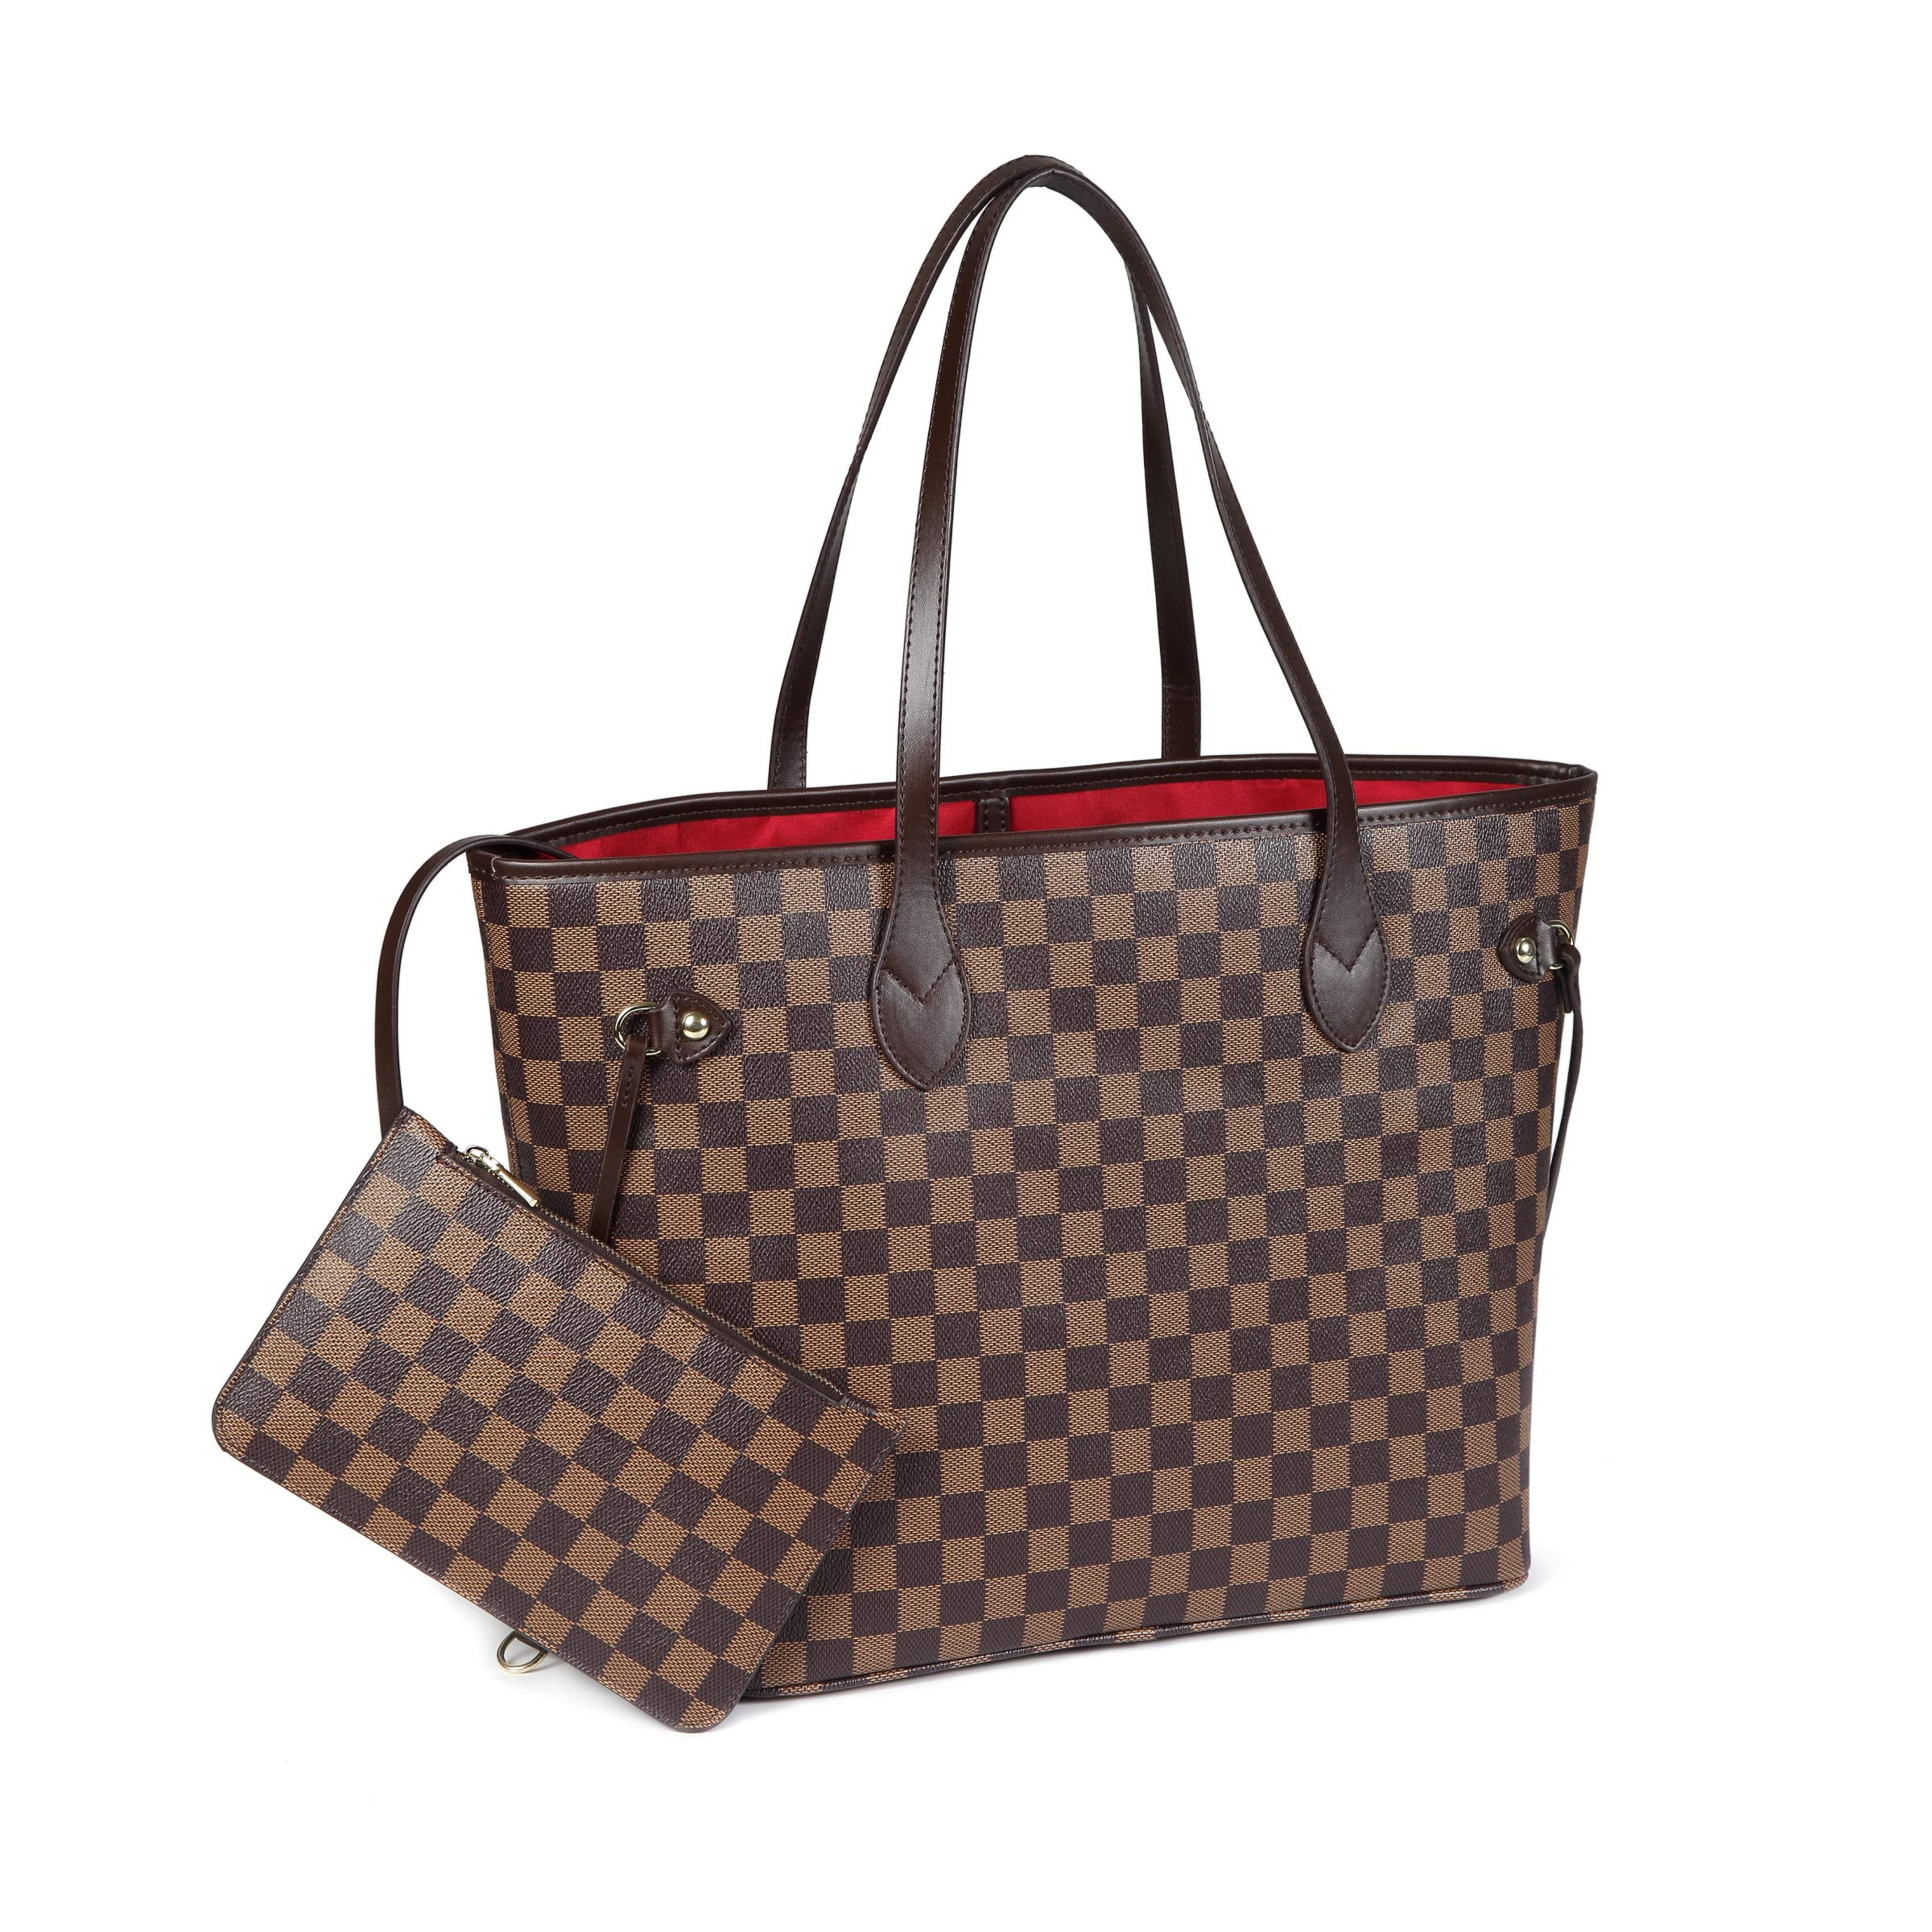 Daisy Rose Checkered Tote Shoulder Bag with inner pouch - PU Vegan Leather (Brown)